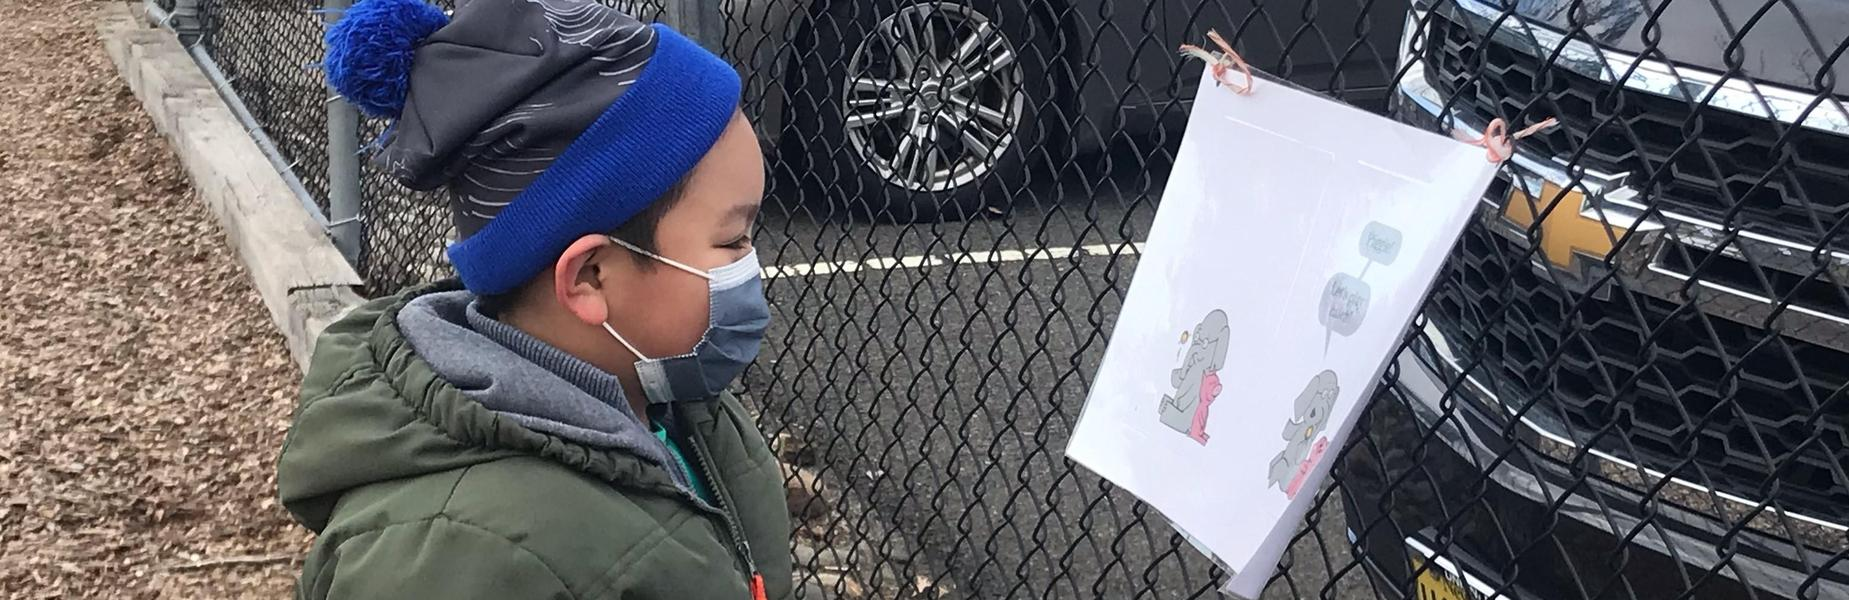 Photo of kindergartner reading a page on a playground Storywalk